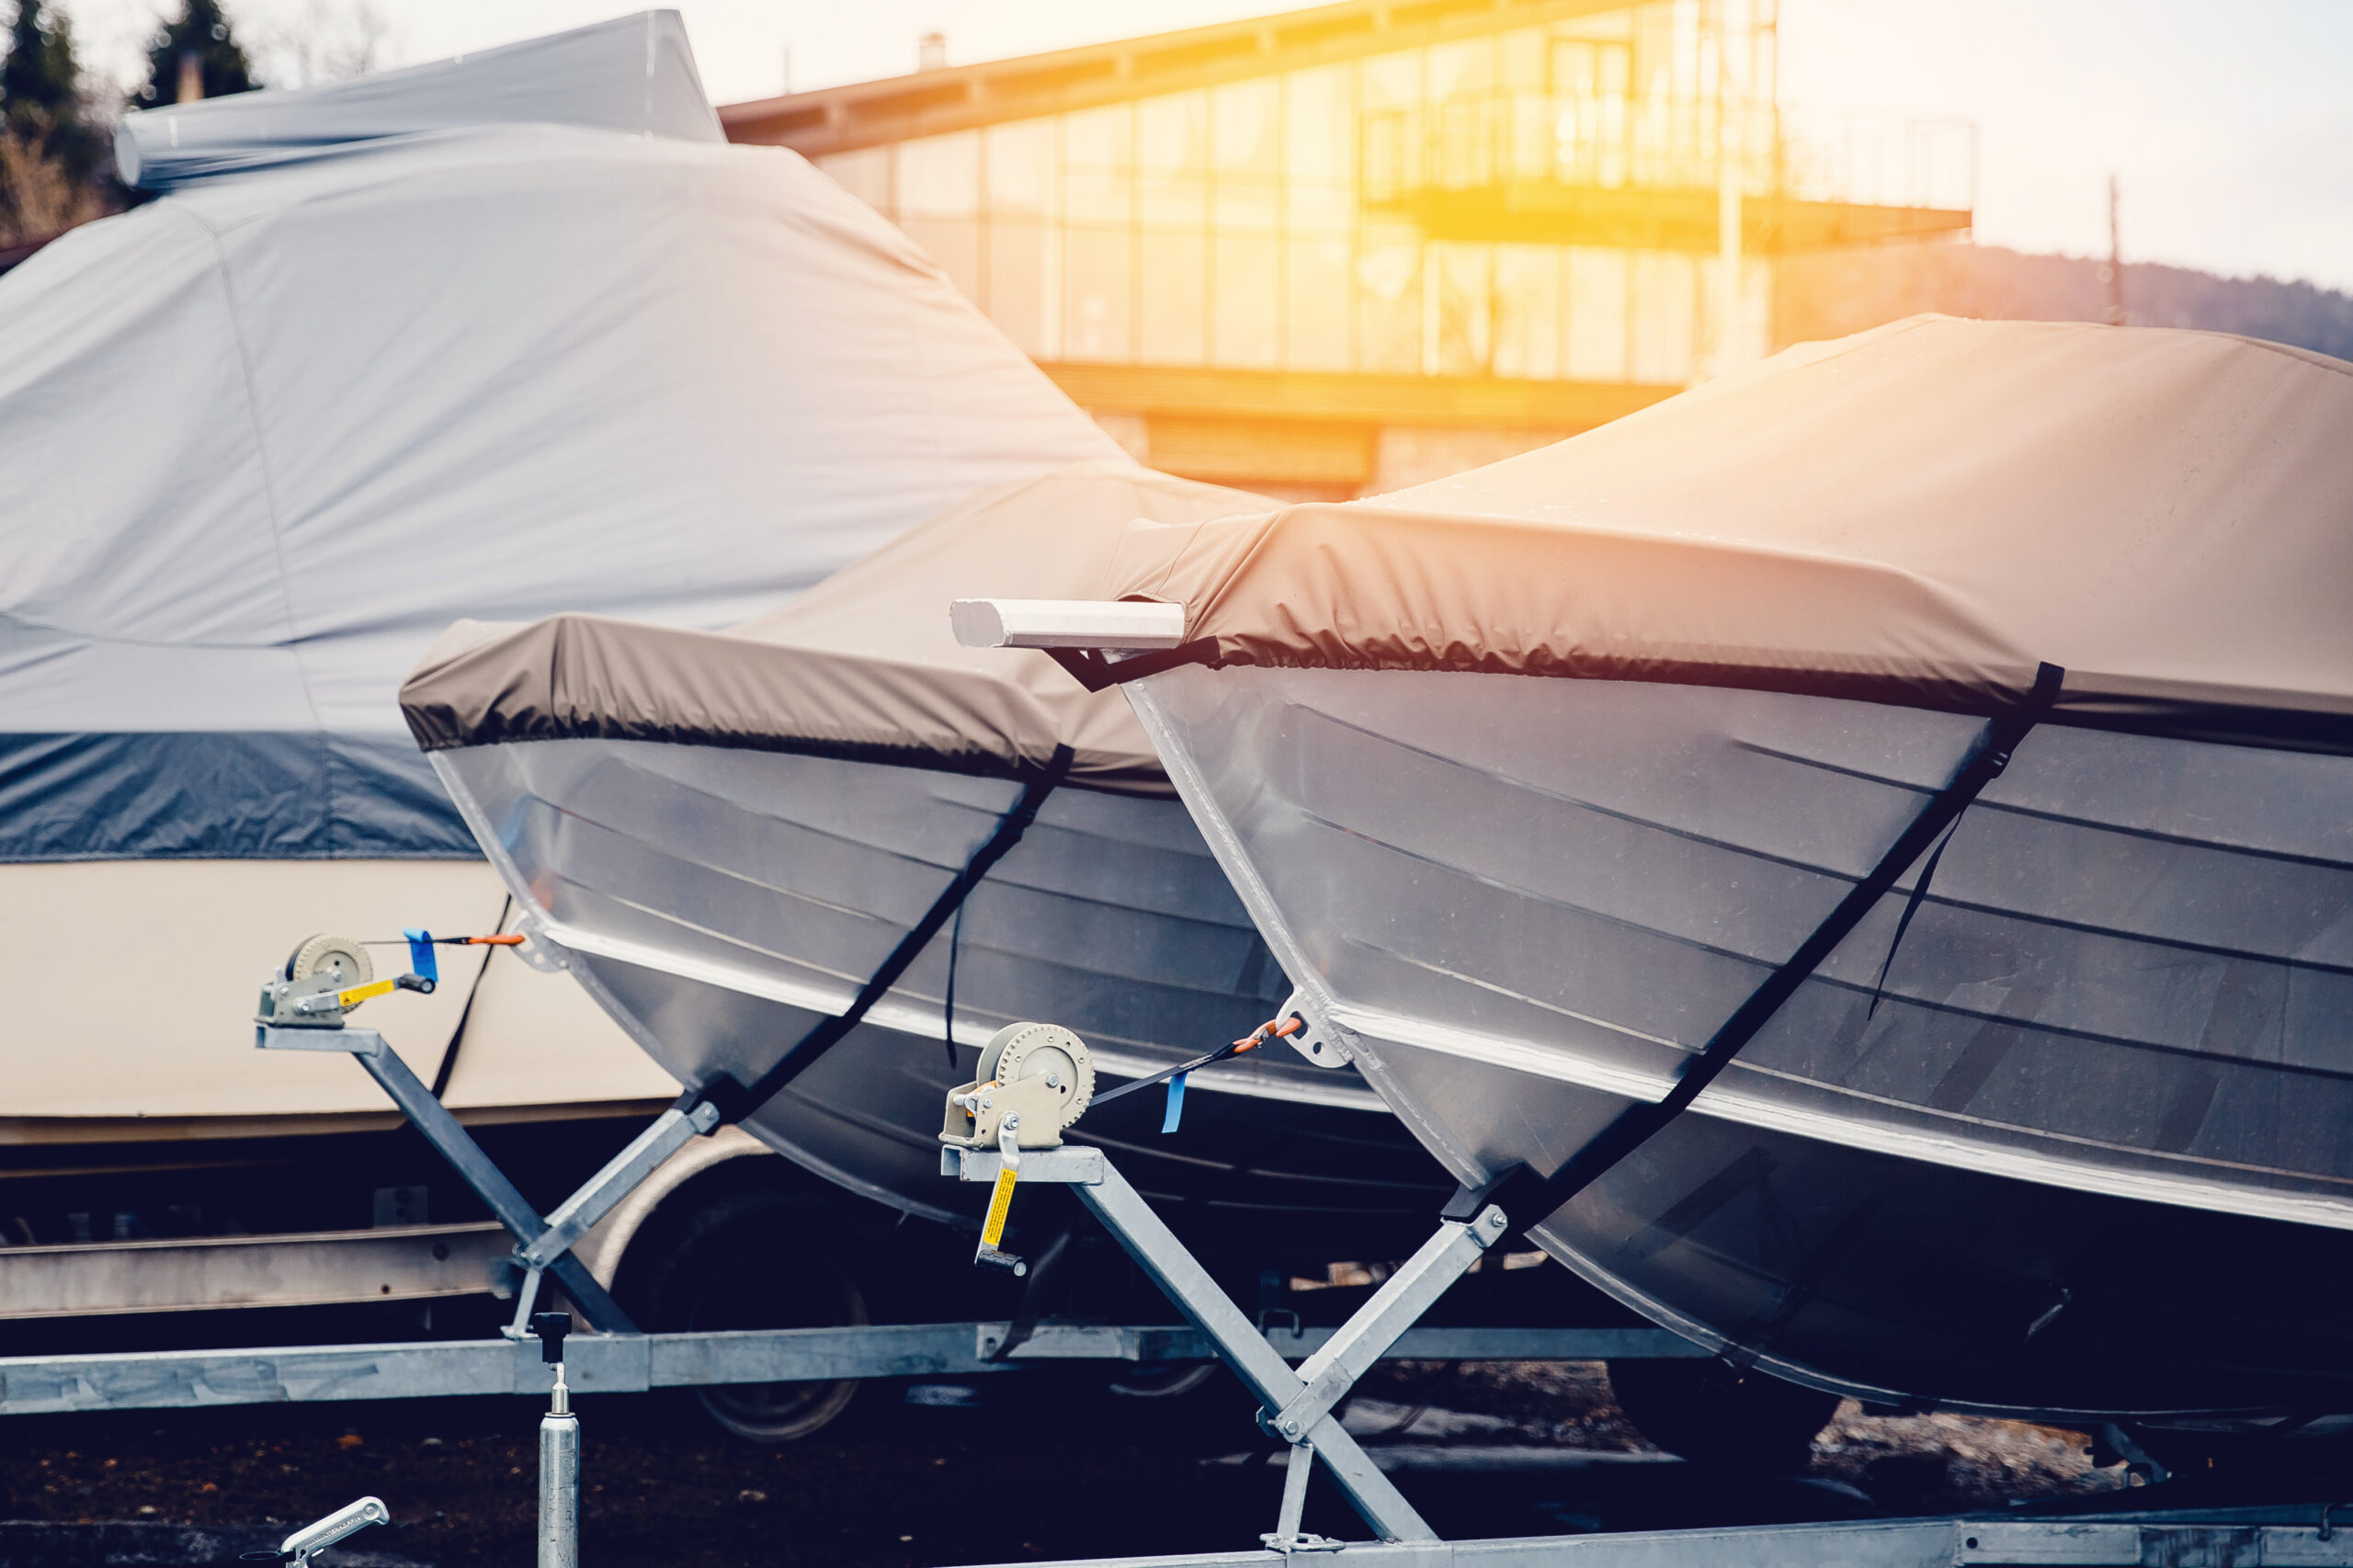 Covered boats in outdoor storage at Leelanau Boat Co